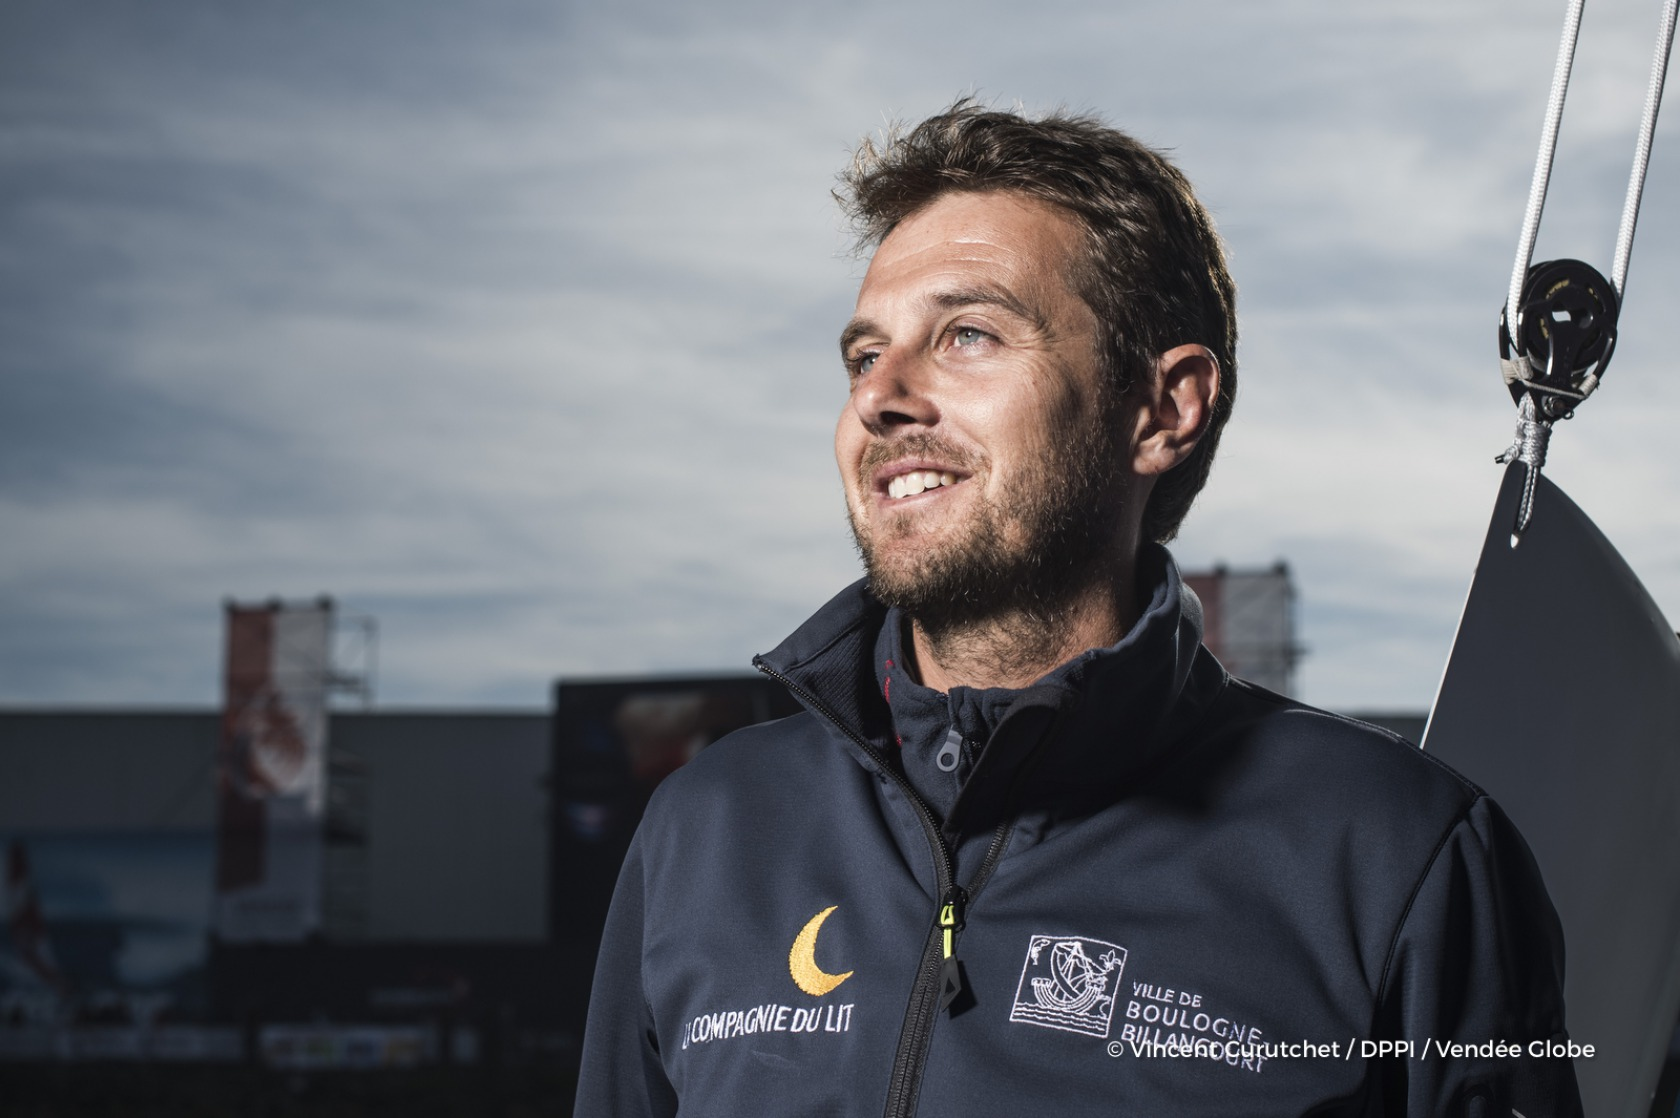 Stephane Le Diraison (FRA), skipper Compagnie du Lit - Boulogne Billancourt, portraited during prestart of the Vendee Globe, in Les Sables d'Olonne, France, on November 1st, 2016 - Photo Vincent Curutchet / DPPI / Vendee Globe